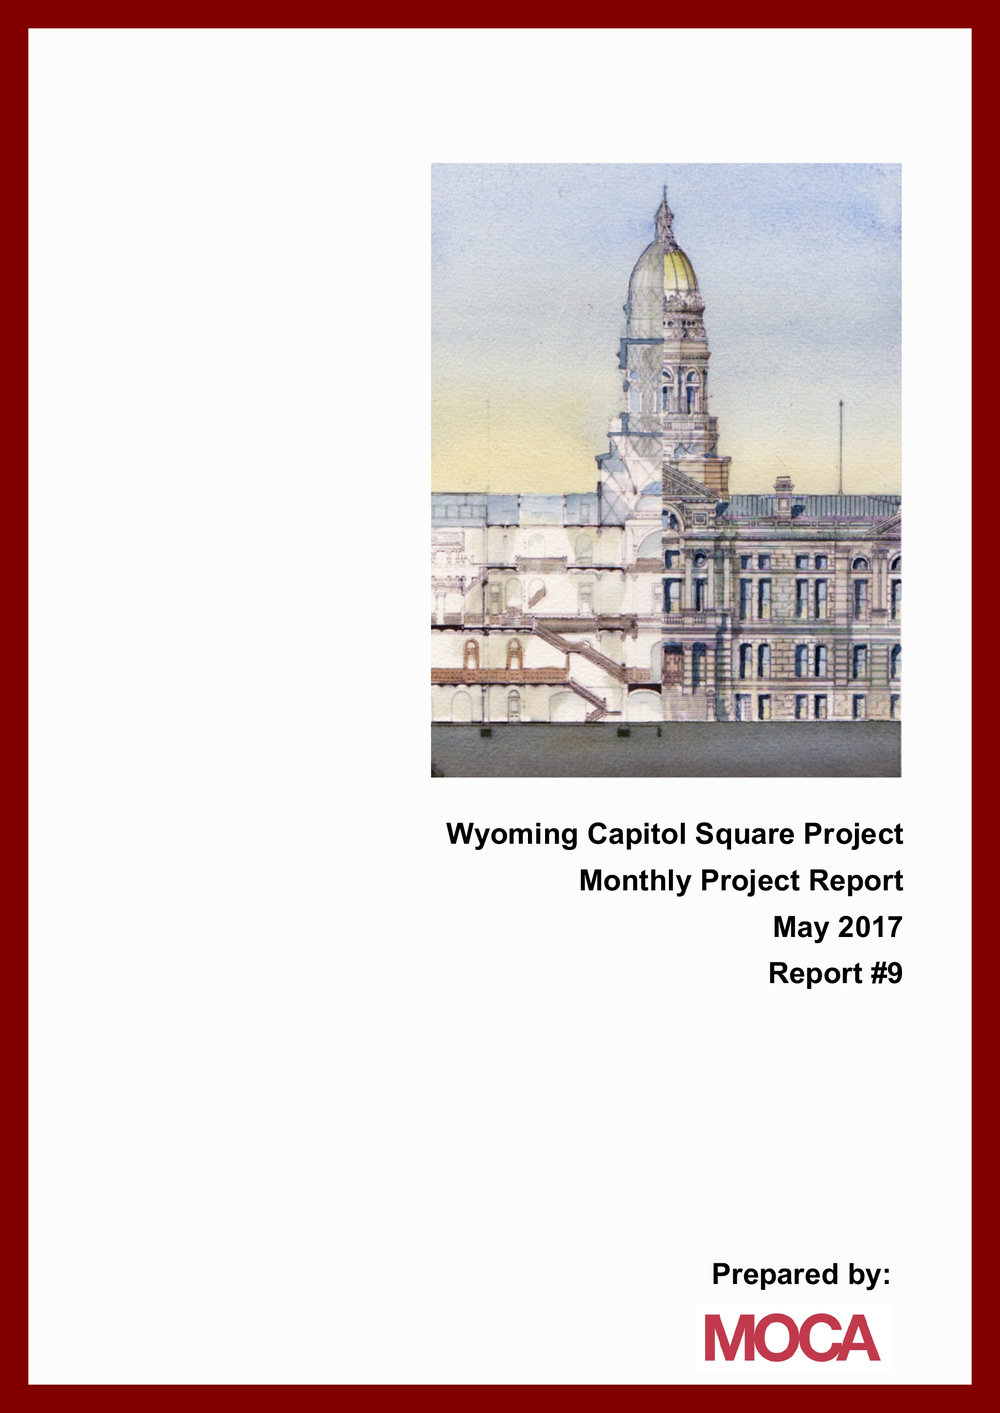 2017-0602-WyomingCapitolMonthlyReport-Final-9.jpg